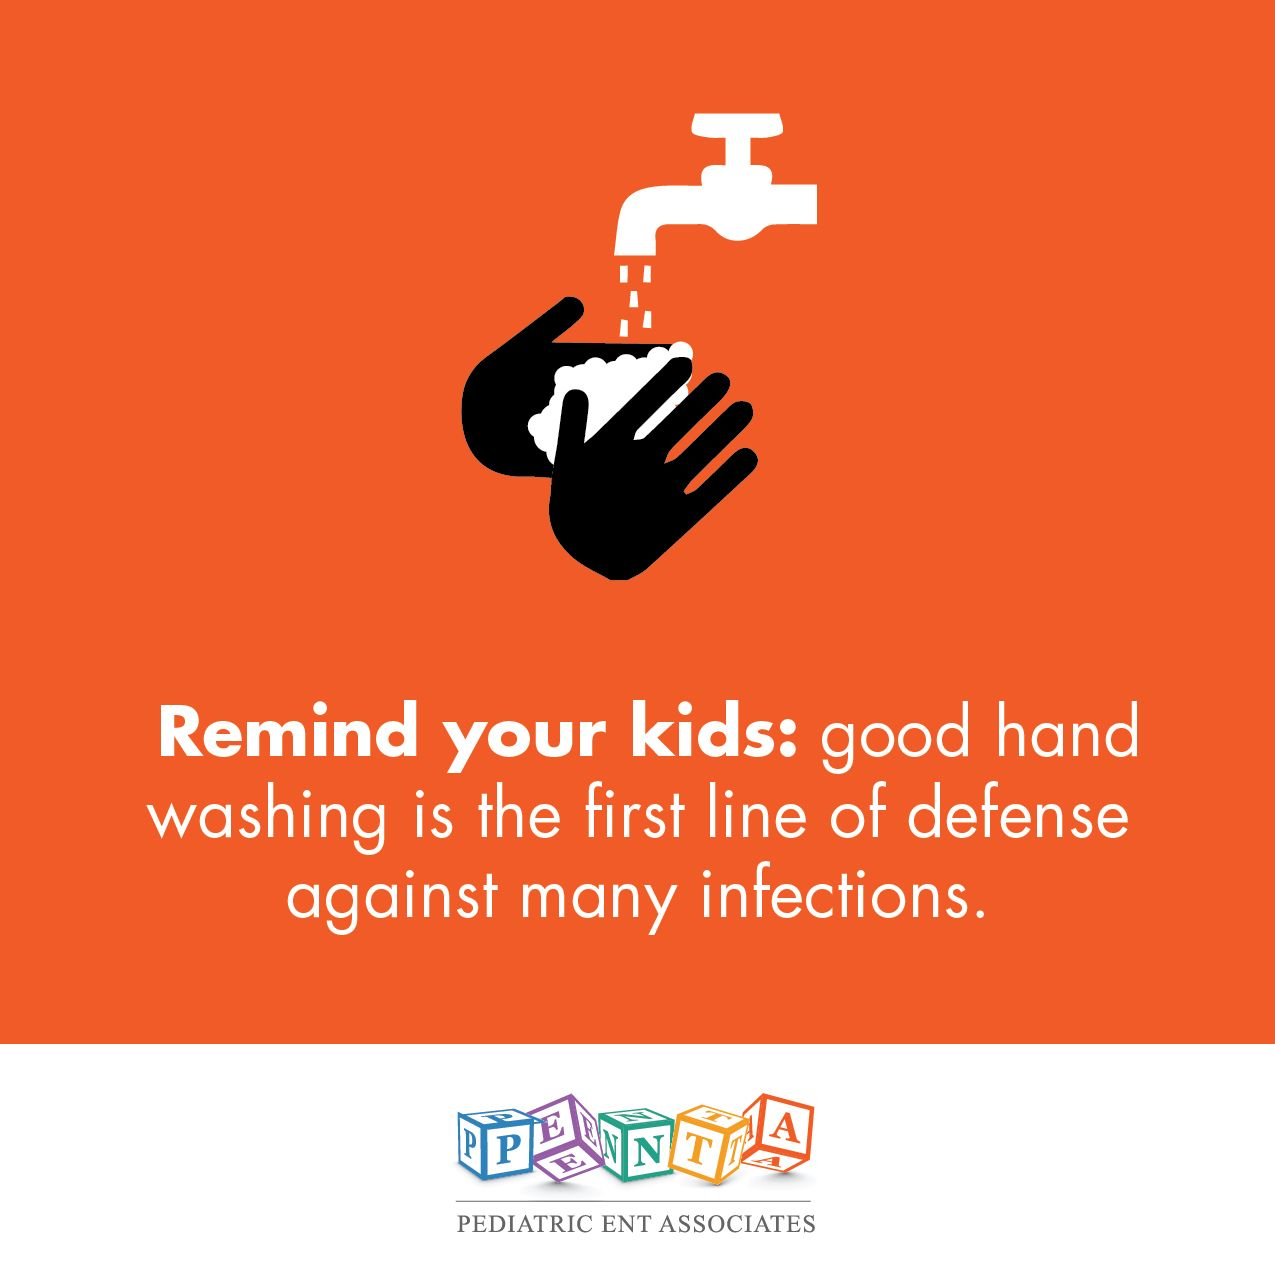 Make Sure Your Kids Wash Their Hands Often And Carry Hand